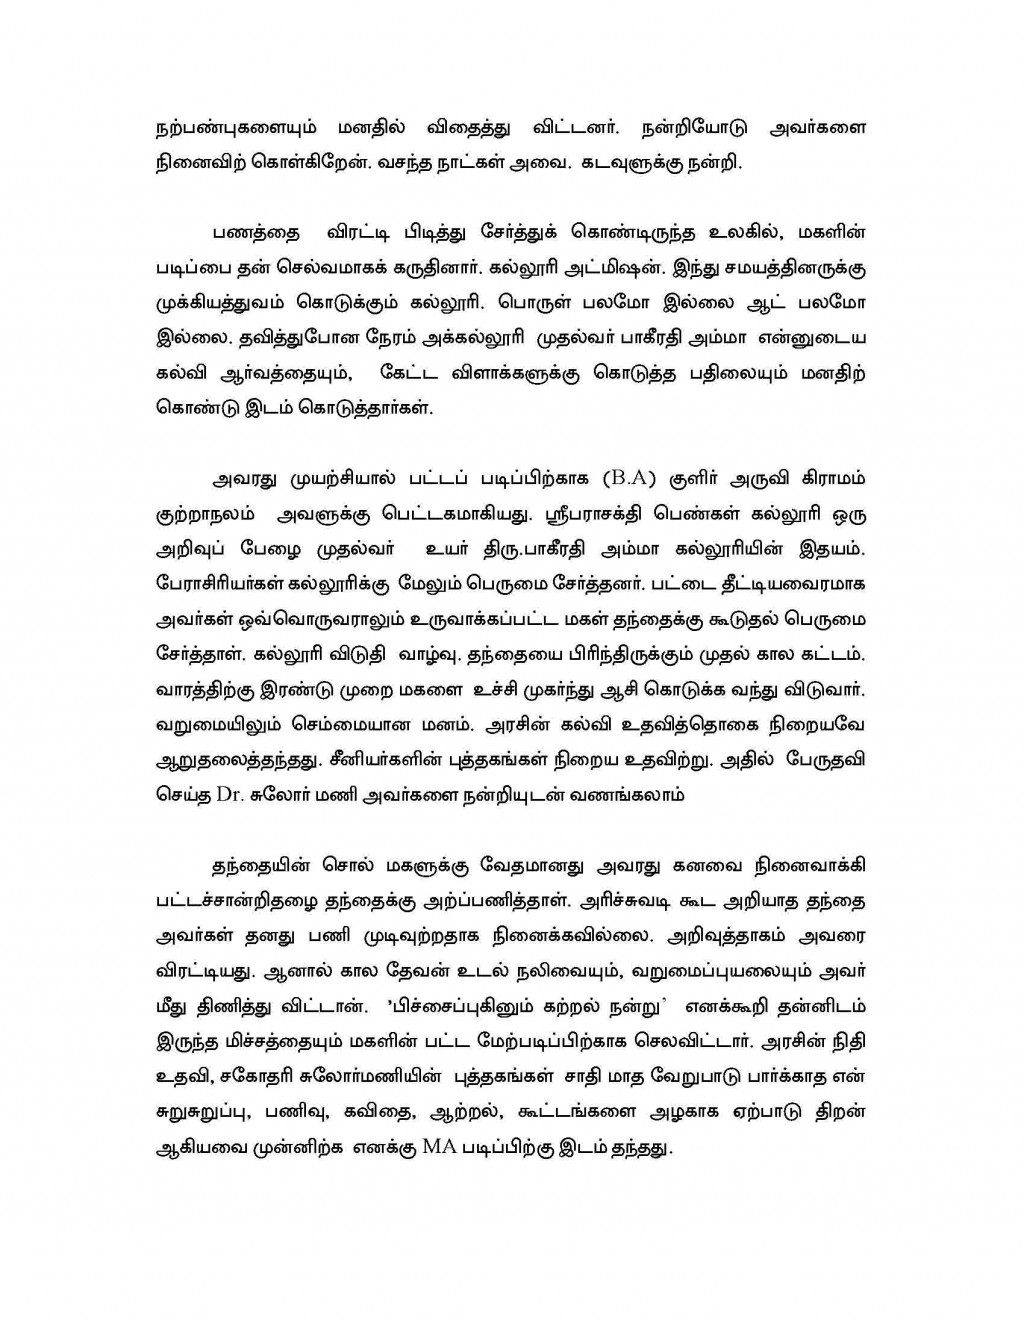 008 Tamil 1 Page 2 Essay About Family Shocking History Influence On Values First And Foremost Large